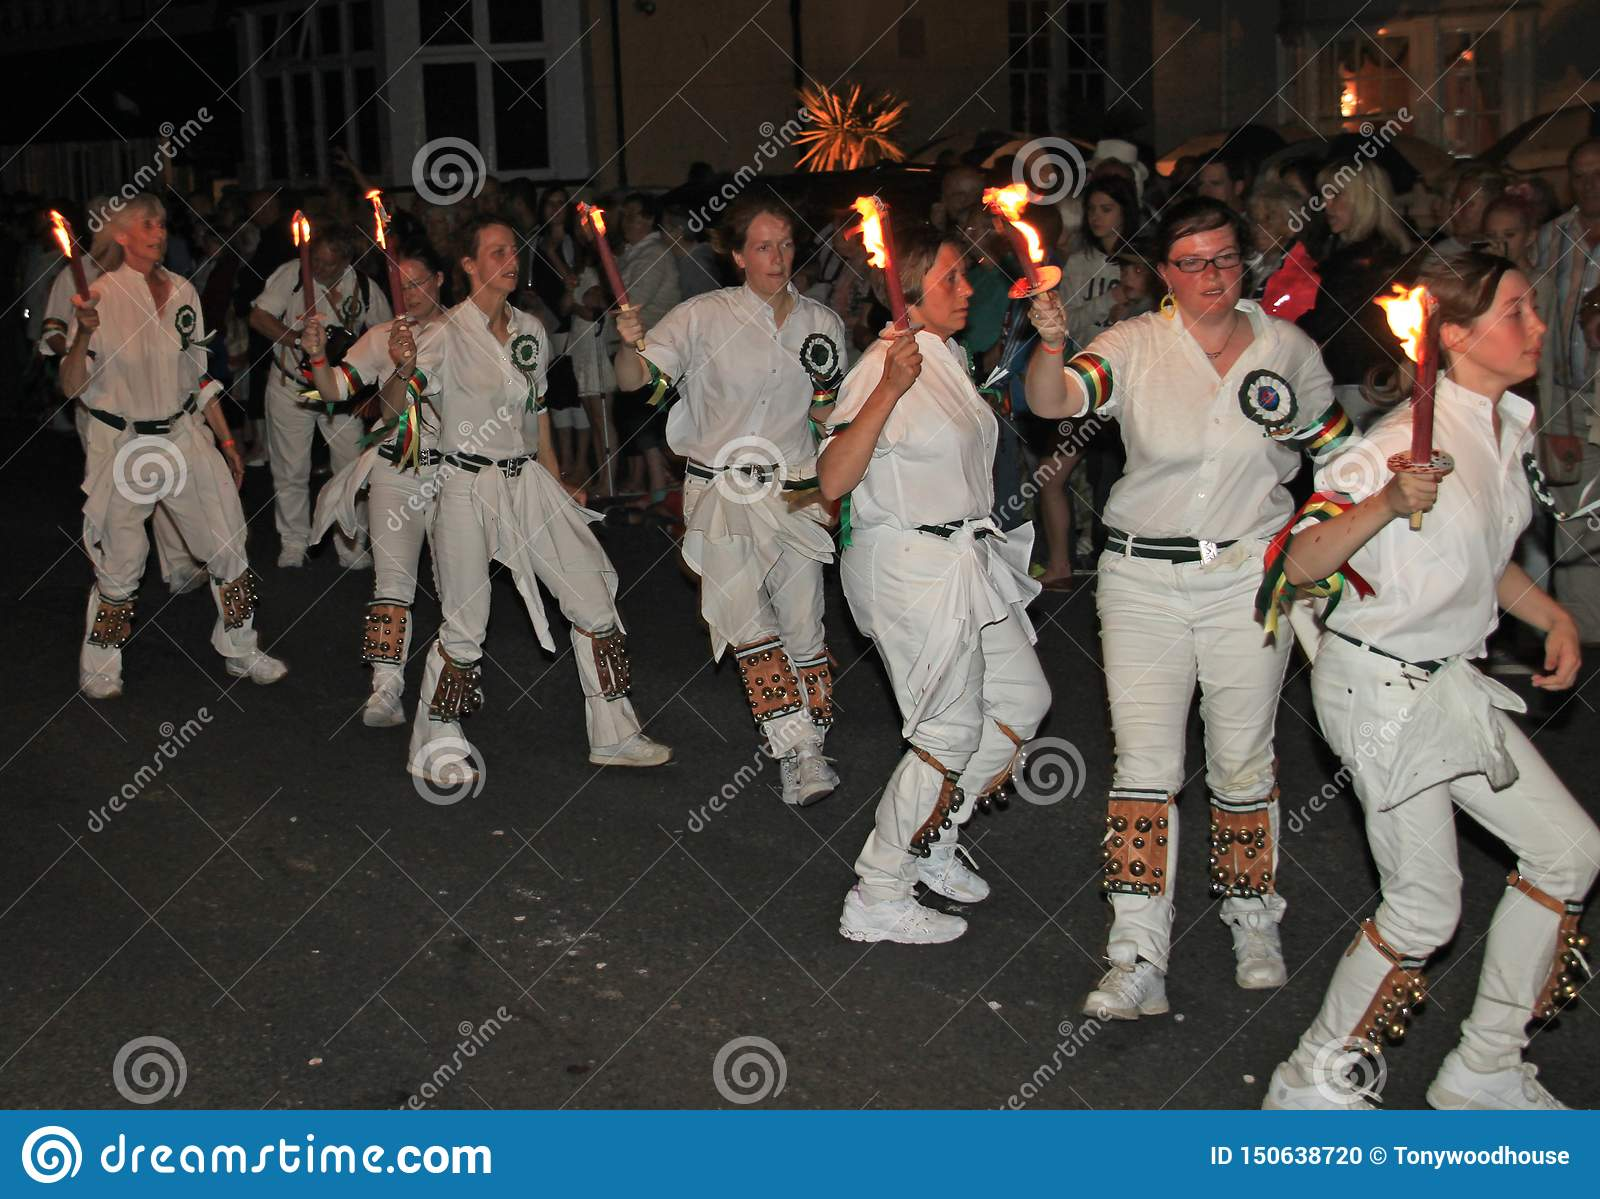 SIDMOUTH, DEVON, ENGLAND - AUGUST 10TH 2012: A troup of young lady Morris dancers hold their flaming torches as they takes part in